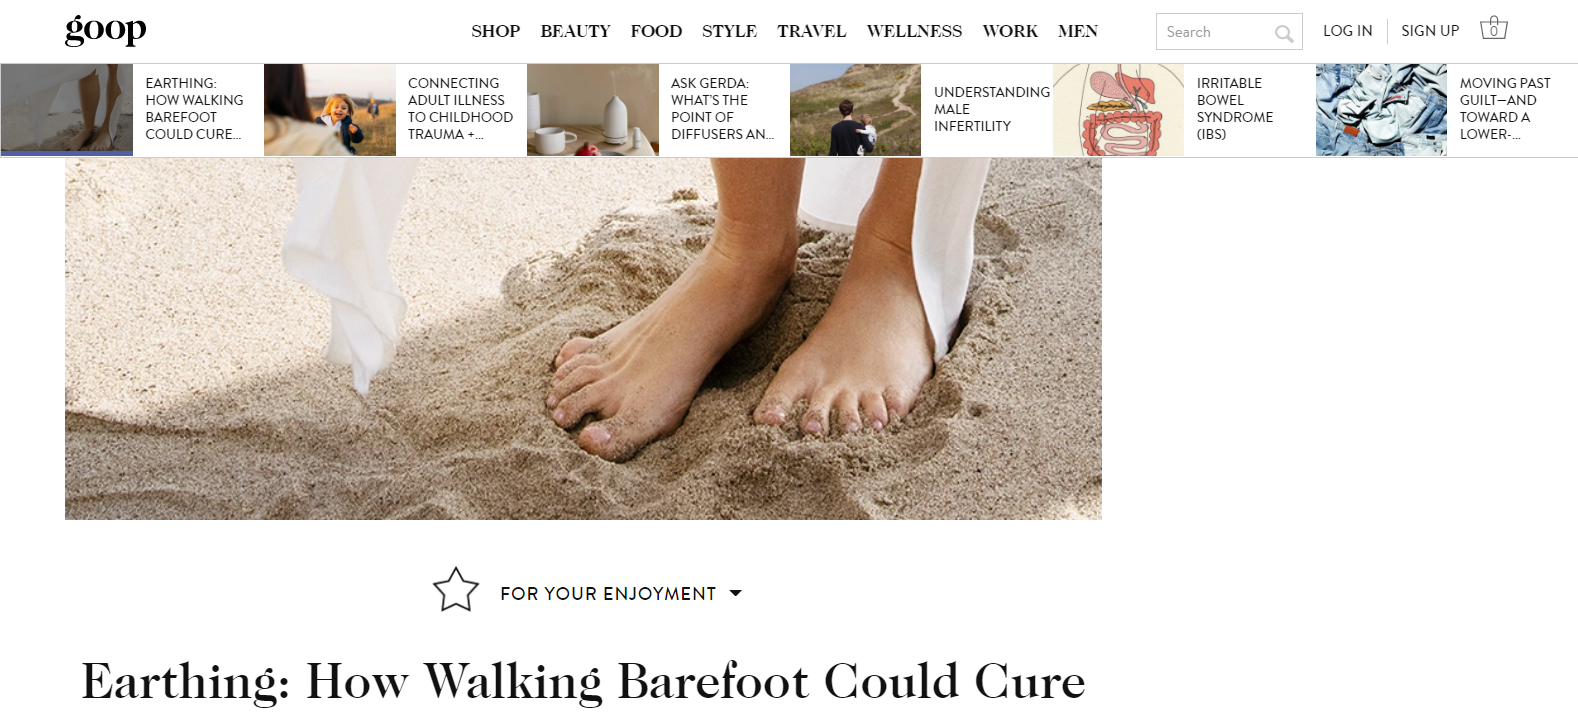 proof that you can sell feet pics - Goop.com using a feet photo to illustrate their article on the benefits of earthing